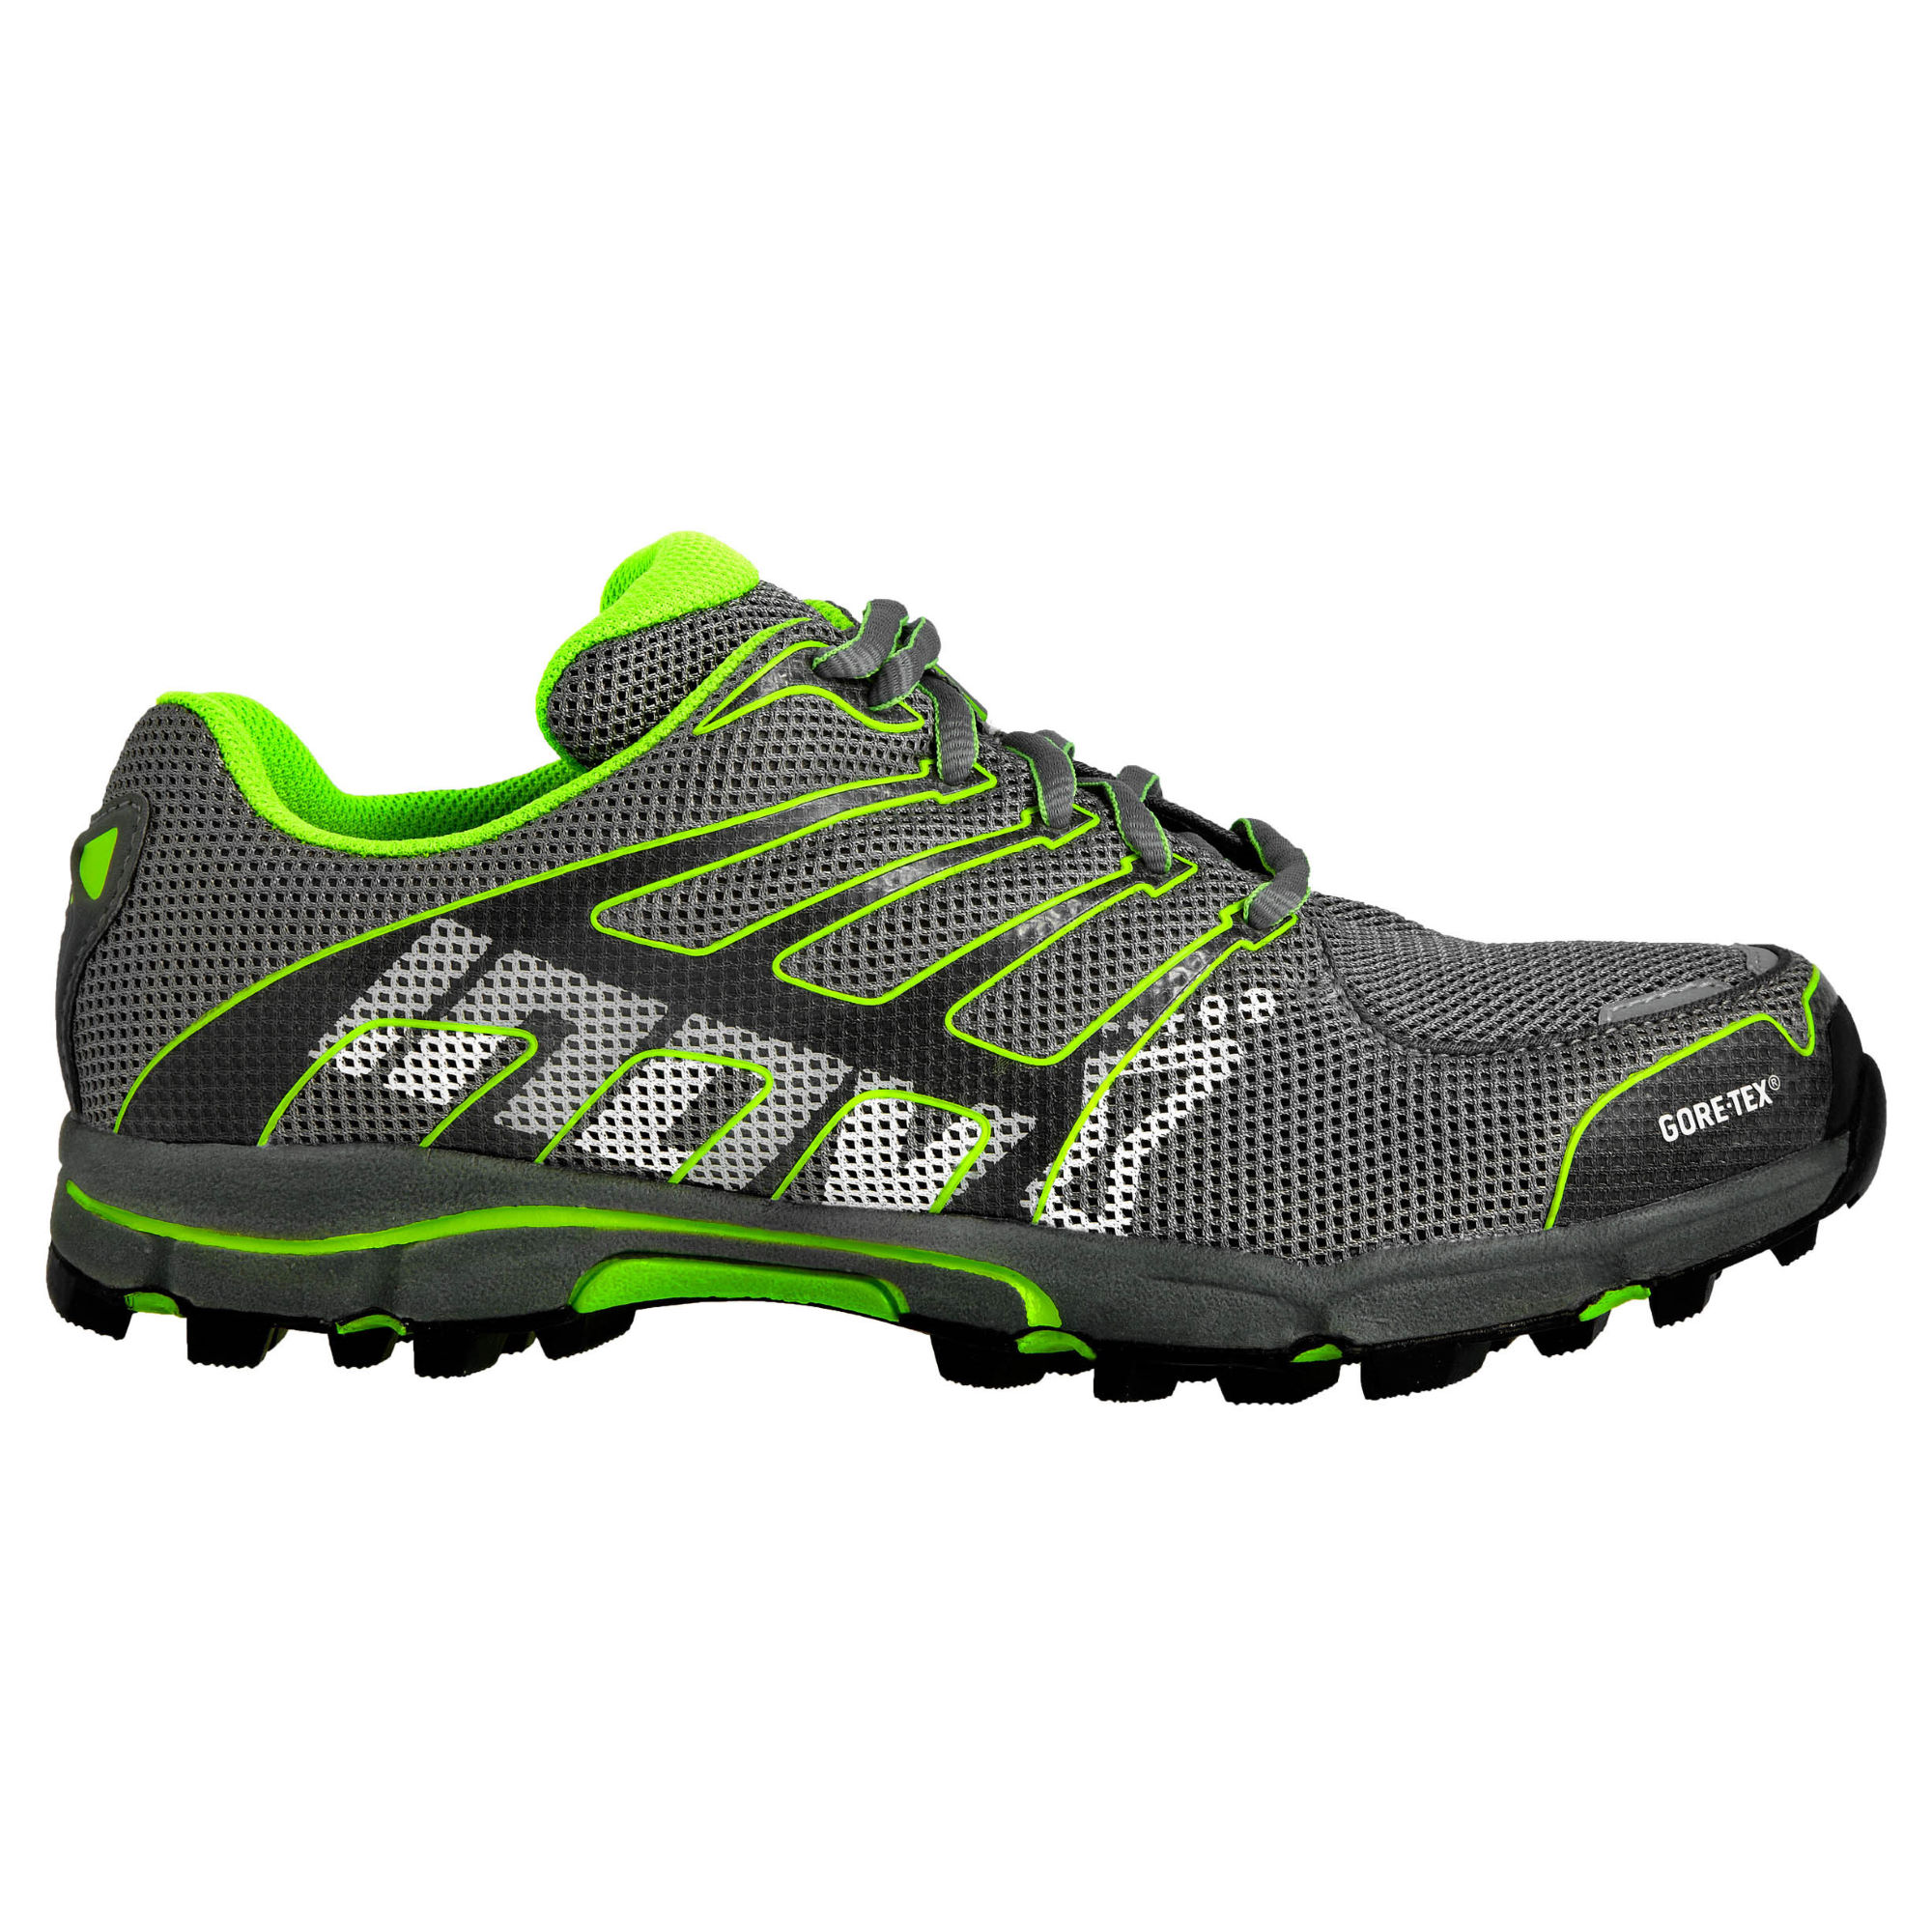 inov 8 evoskin shoes size guide